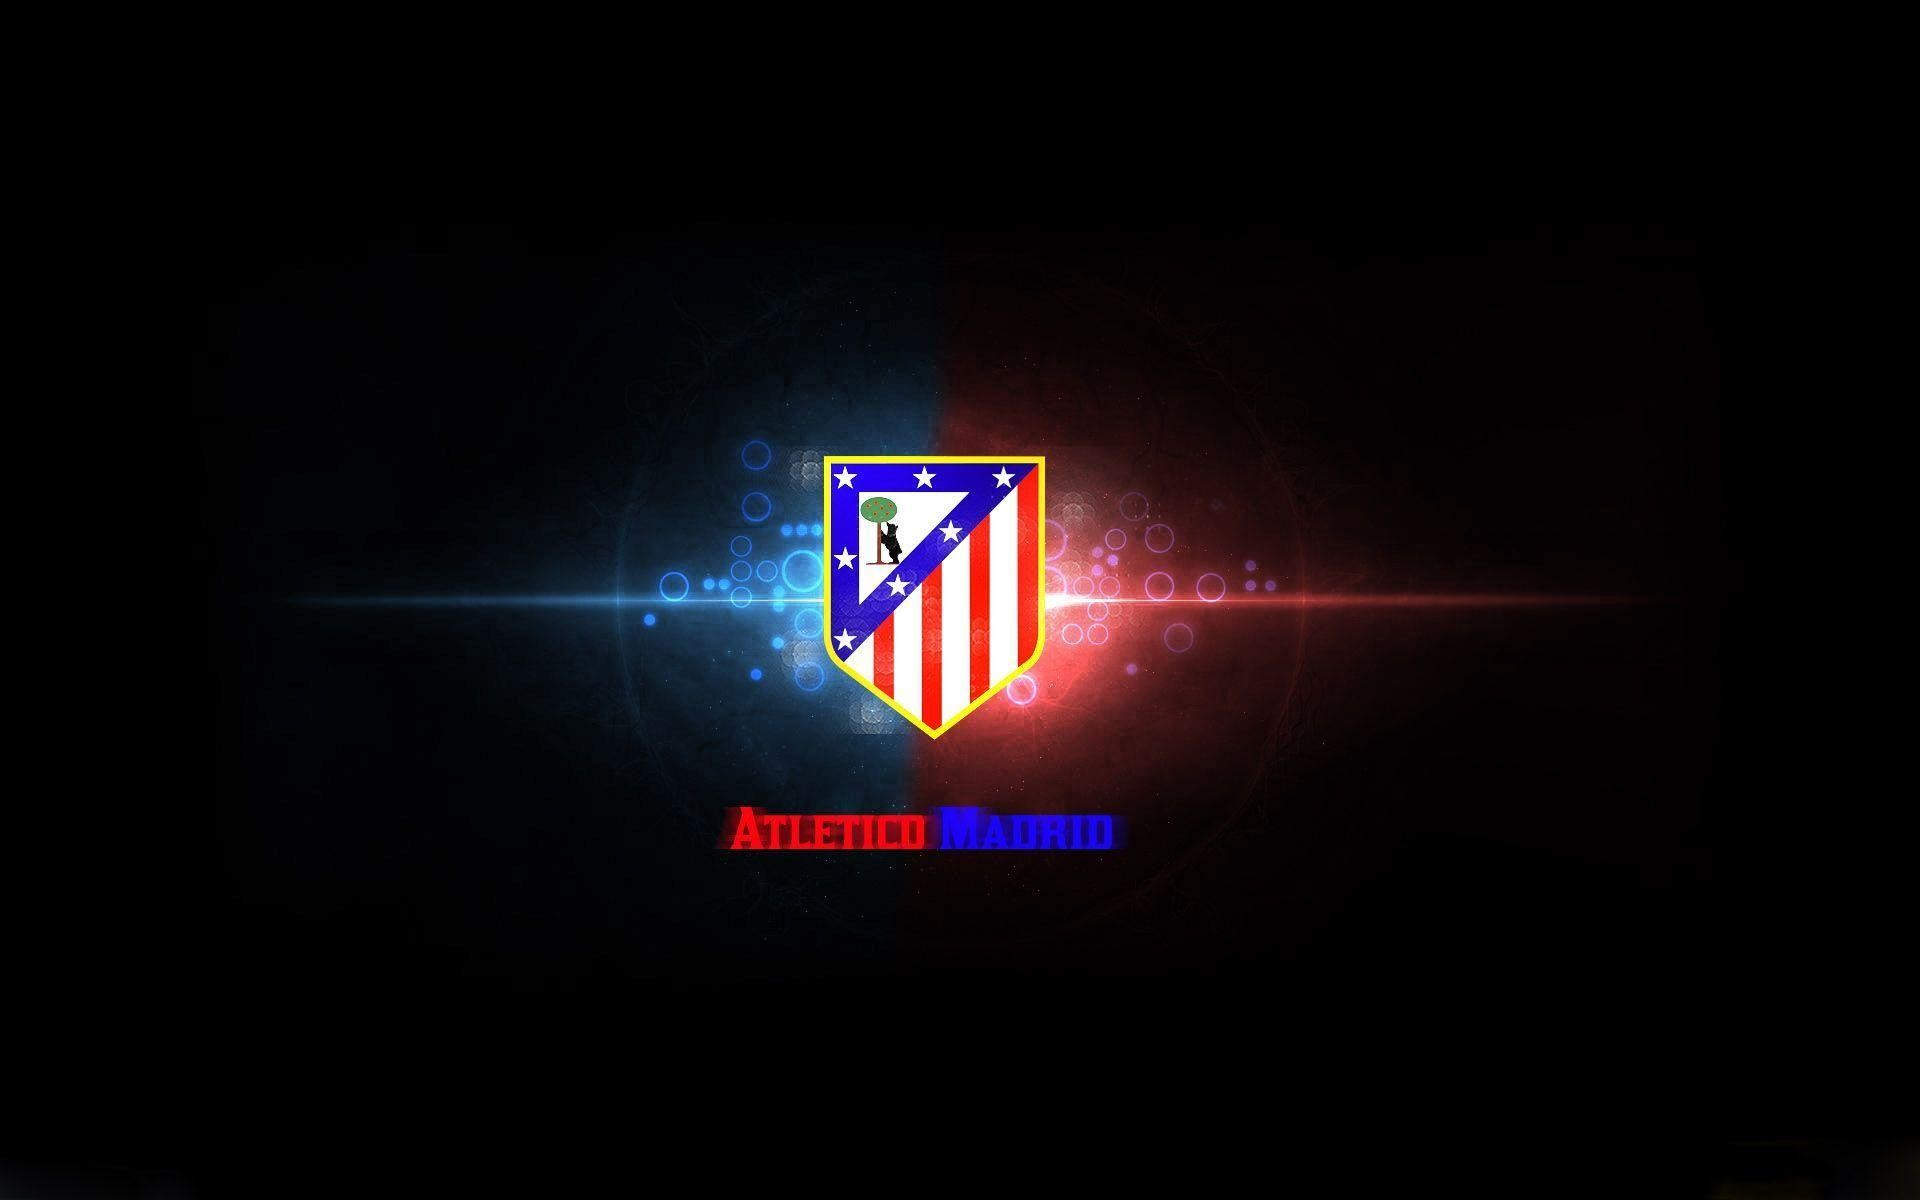 1920x1200 Atletico Madrid 2015 Logo Wallpaper Wide or HD | Sports Wallpapers